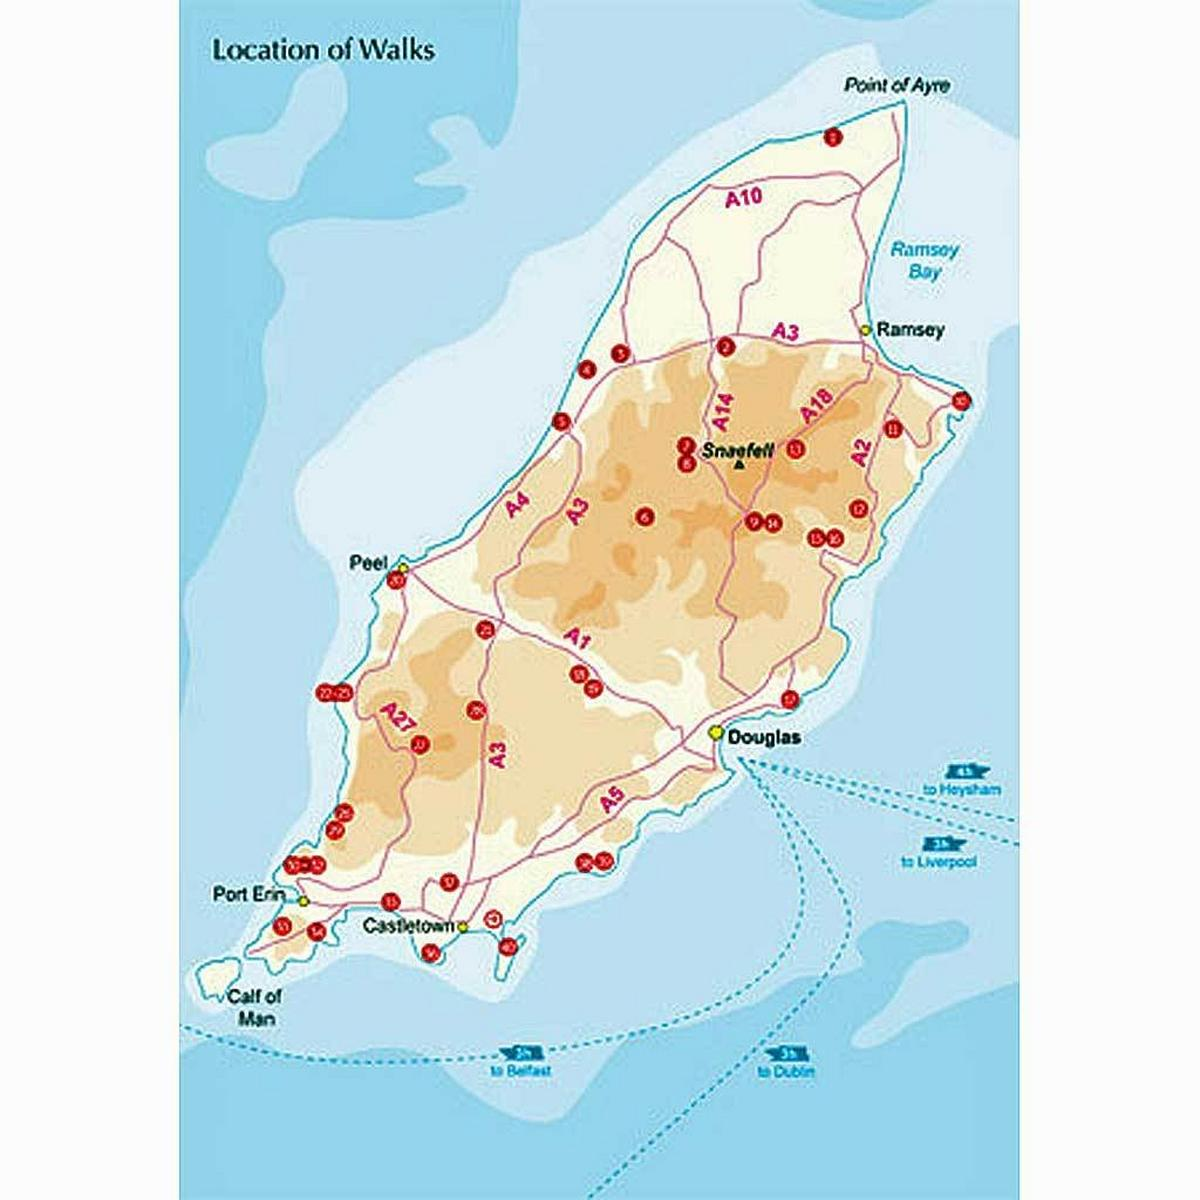 Cicerone Guide Book: Walking on the Isle of Man: Marsh